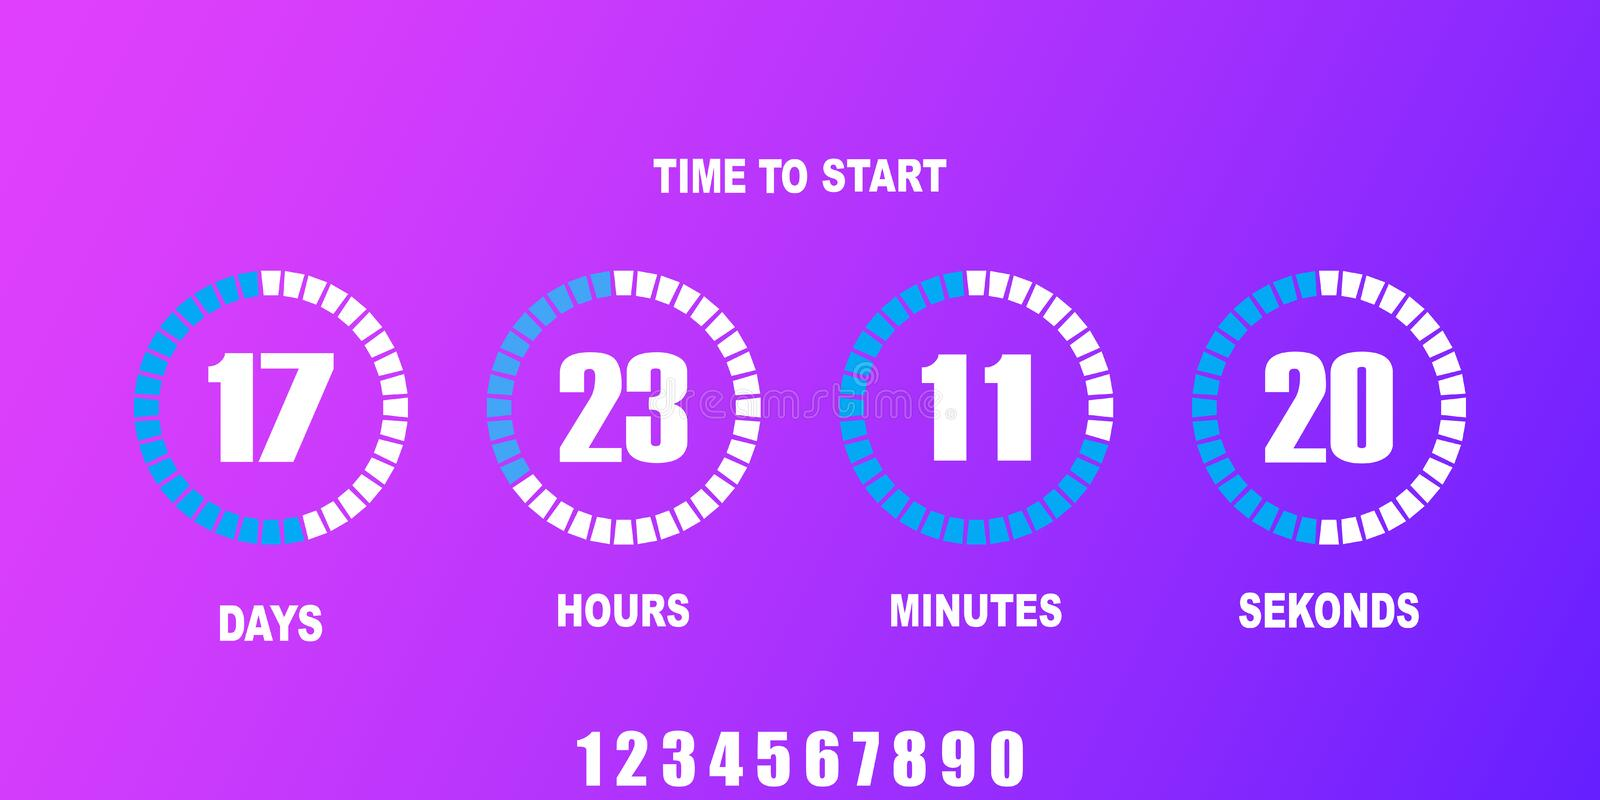 Flip countdown clock counter timer royalty free illustration